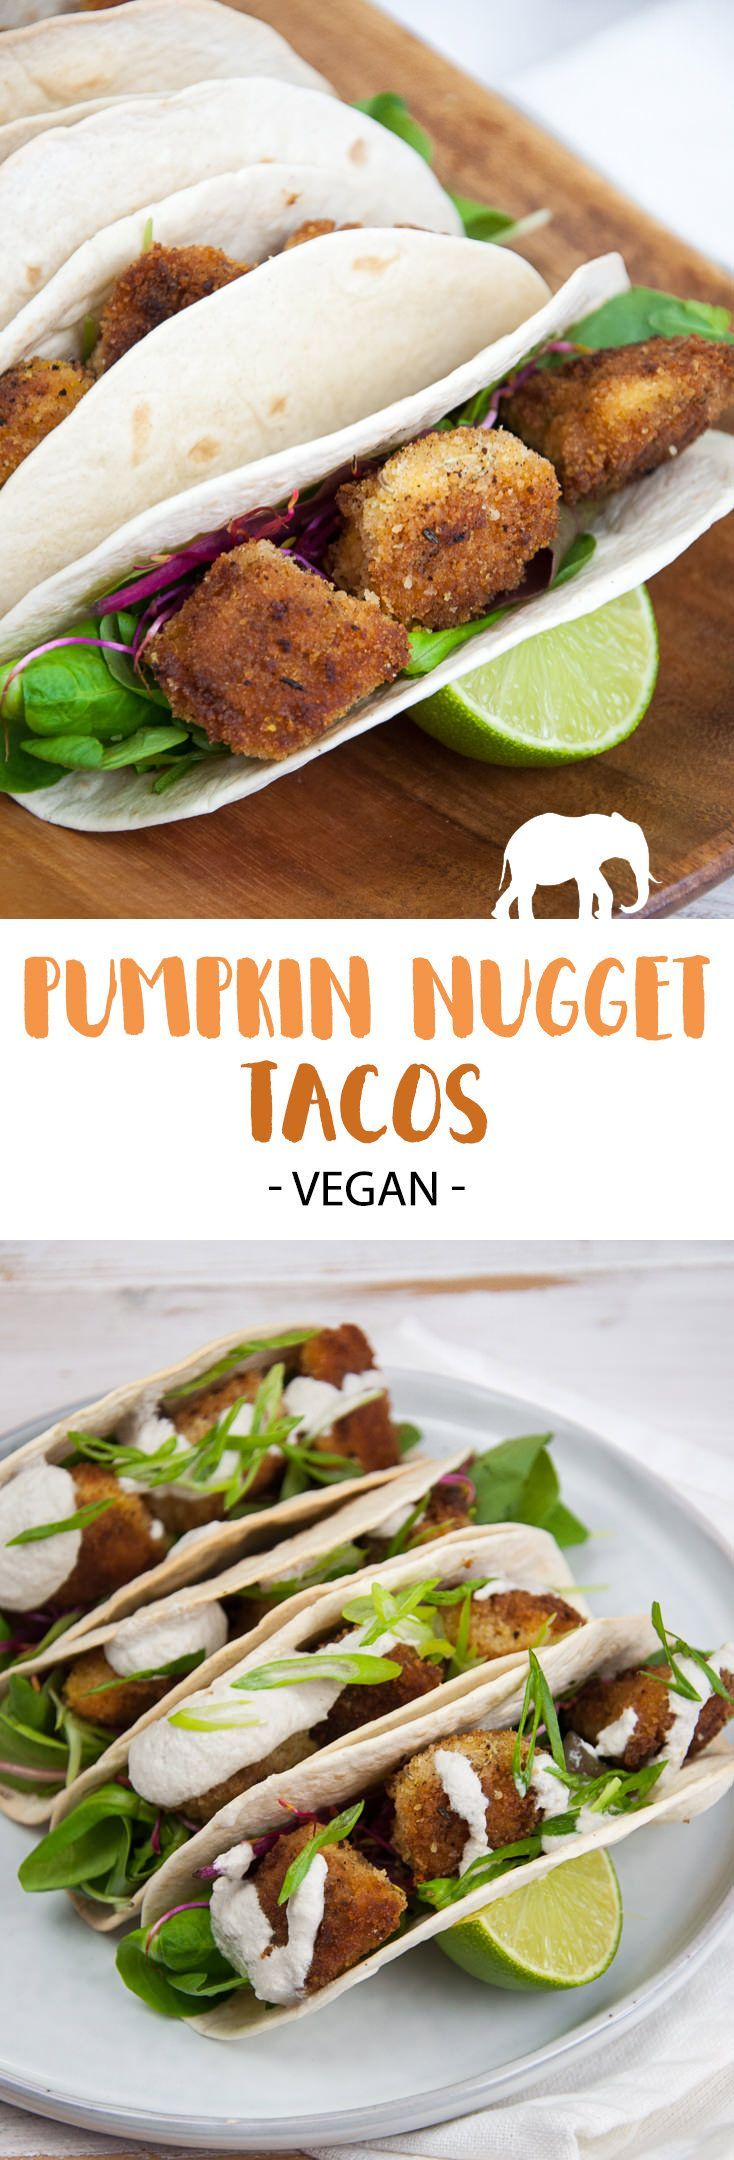 These vegan Pumpkin Nugget Tacos are filled with homemade breaded pumpkin pieces, salad, sprouts and topped with Garlic Sunflower Sauce. Delicious!